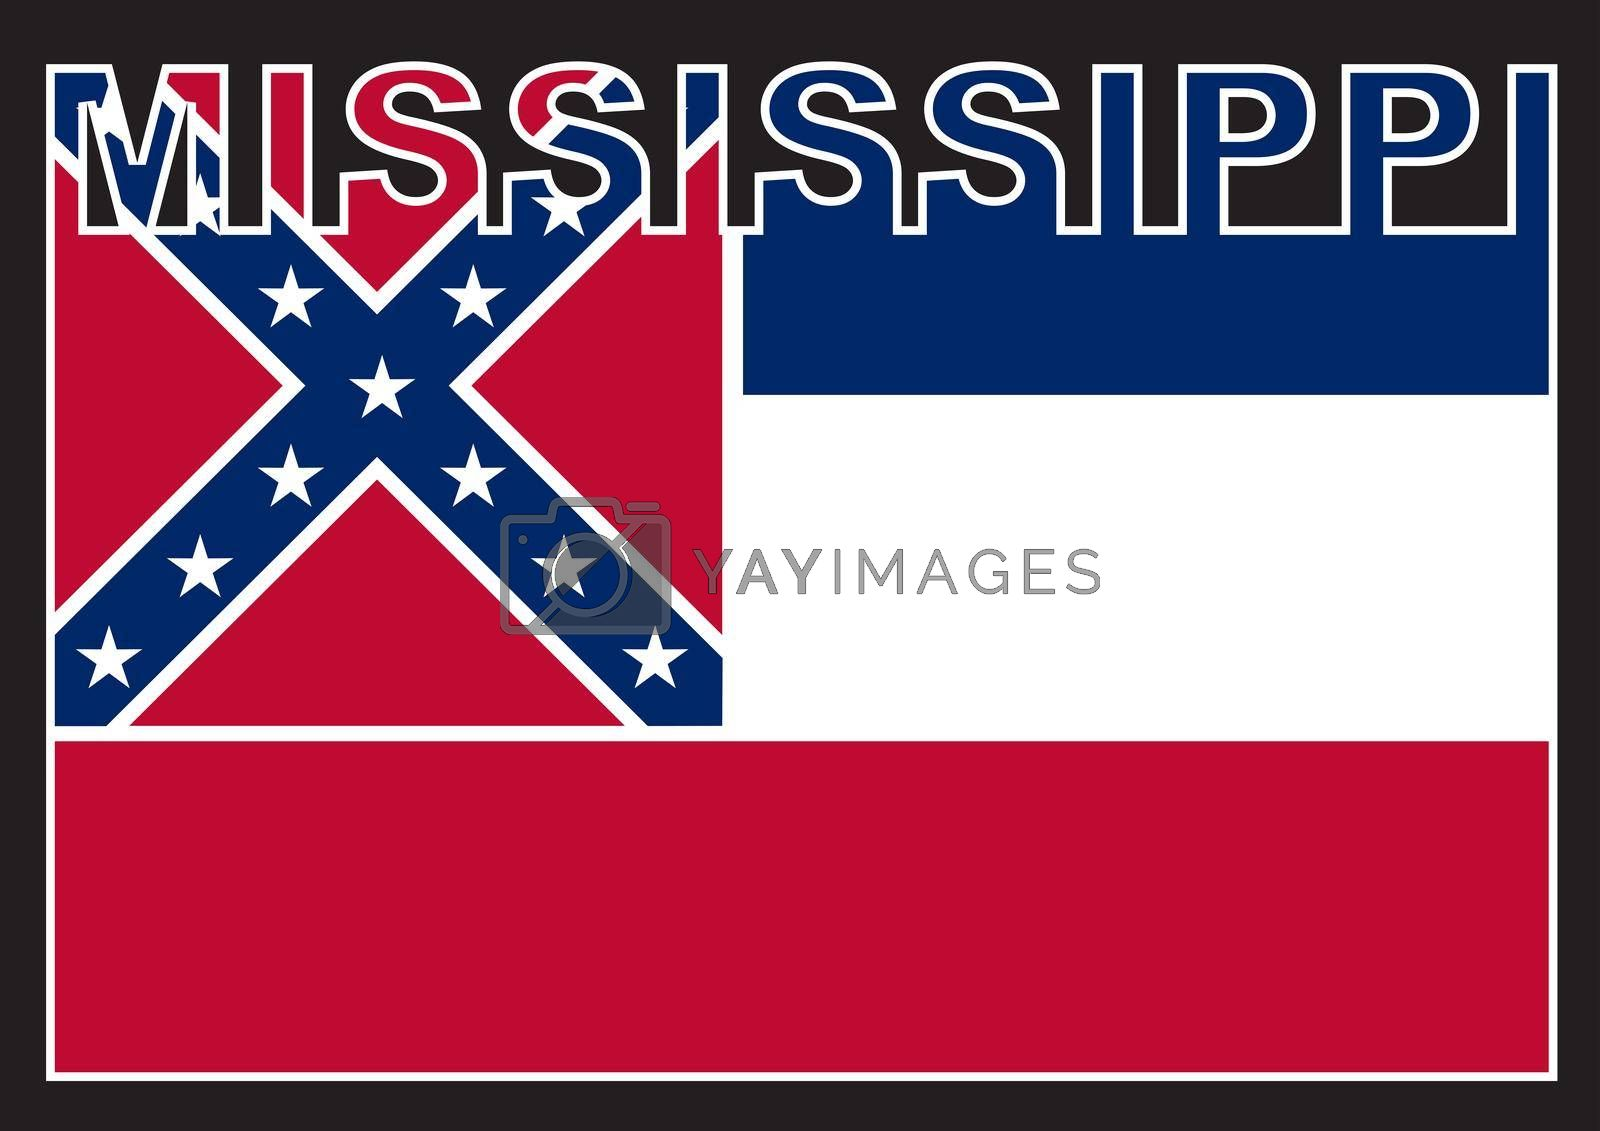 MississippiText in silhouette set over the state flag